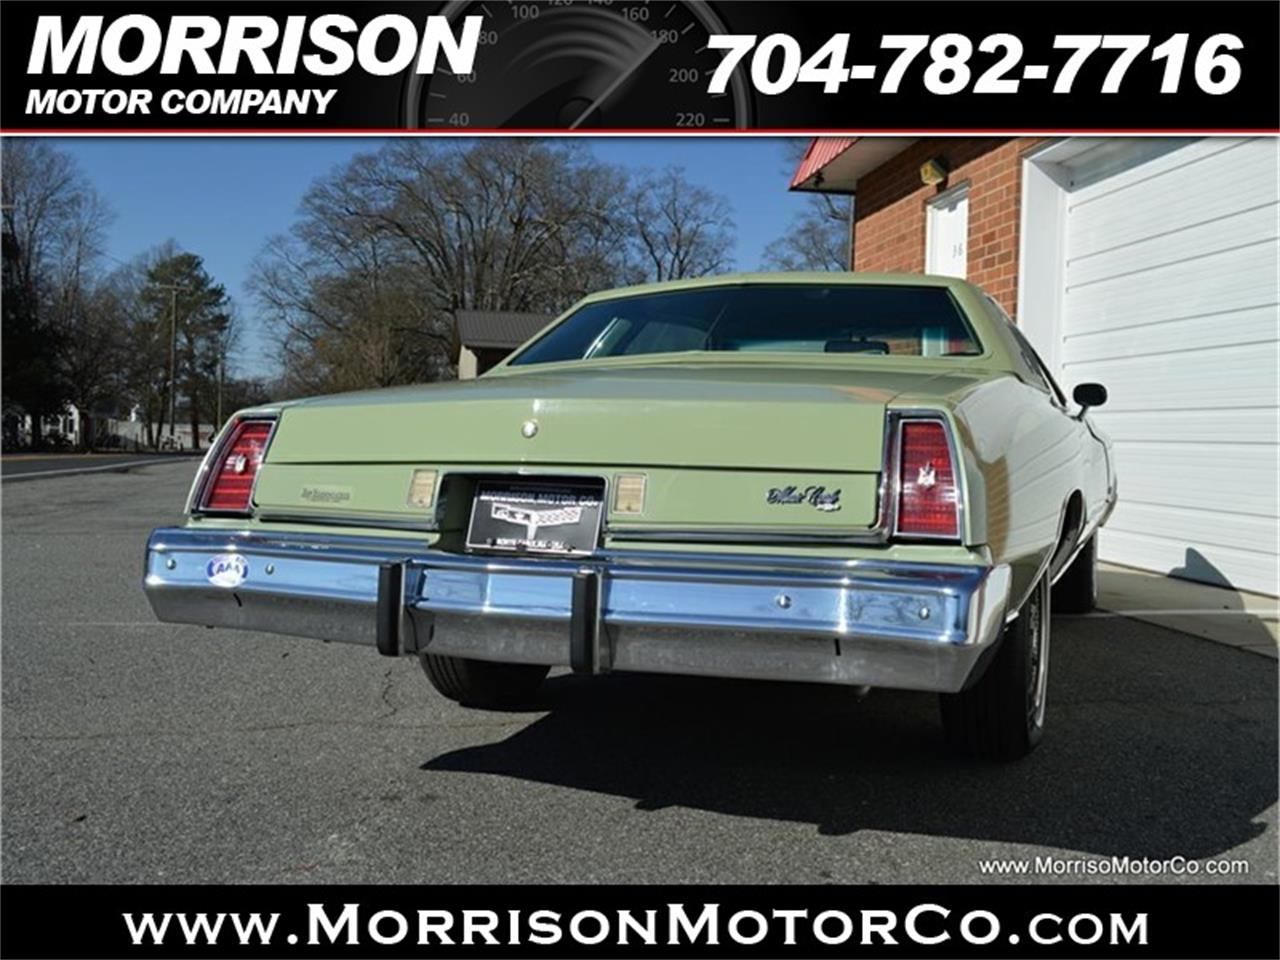 Large Picture of 1974 Chevrolet Monte Carlo located in Concord North Carolina - $19,900.00 Offered by Morrison Motor Company - PEZN